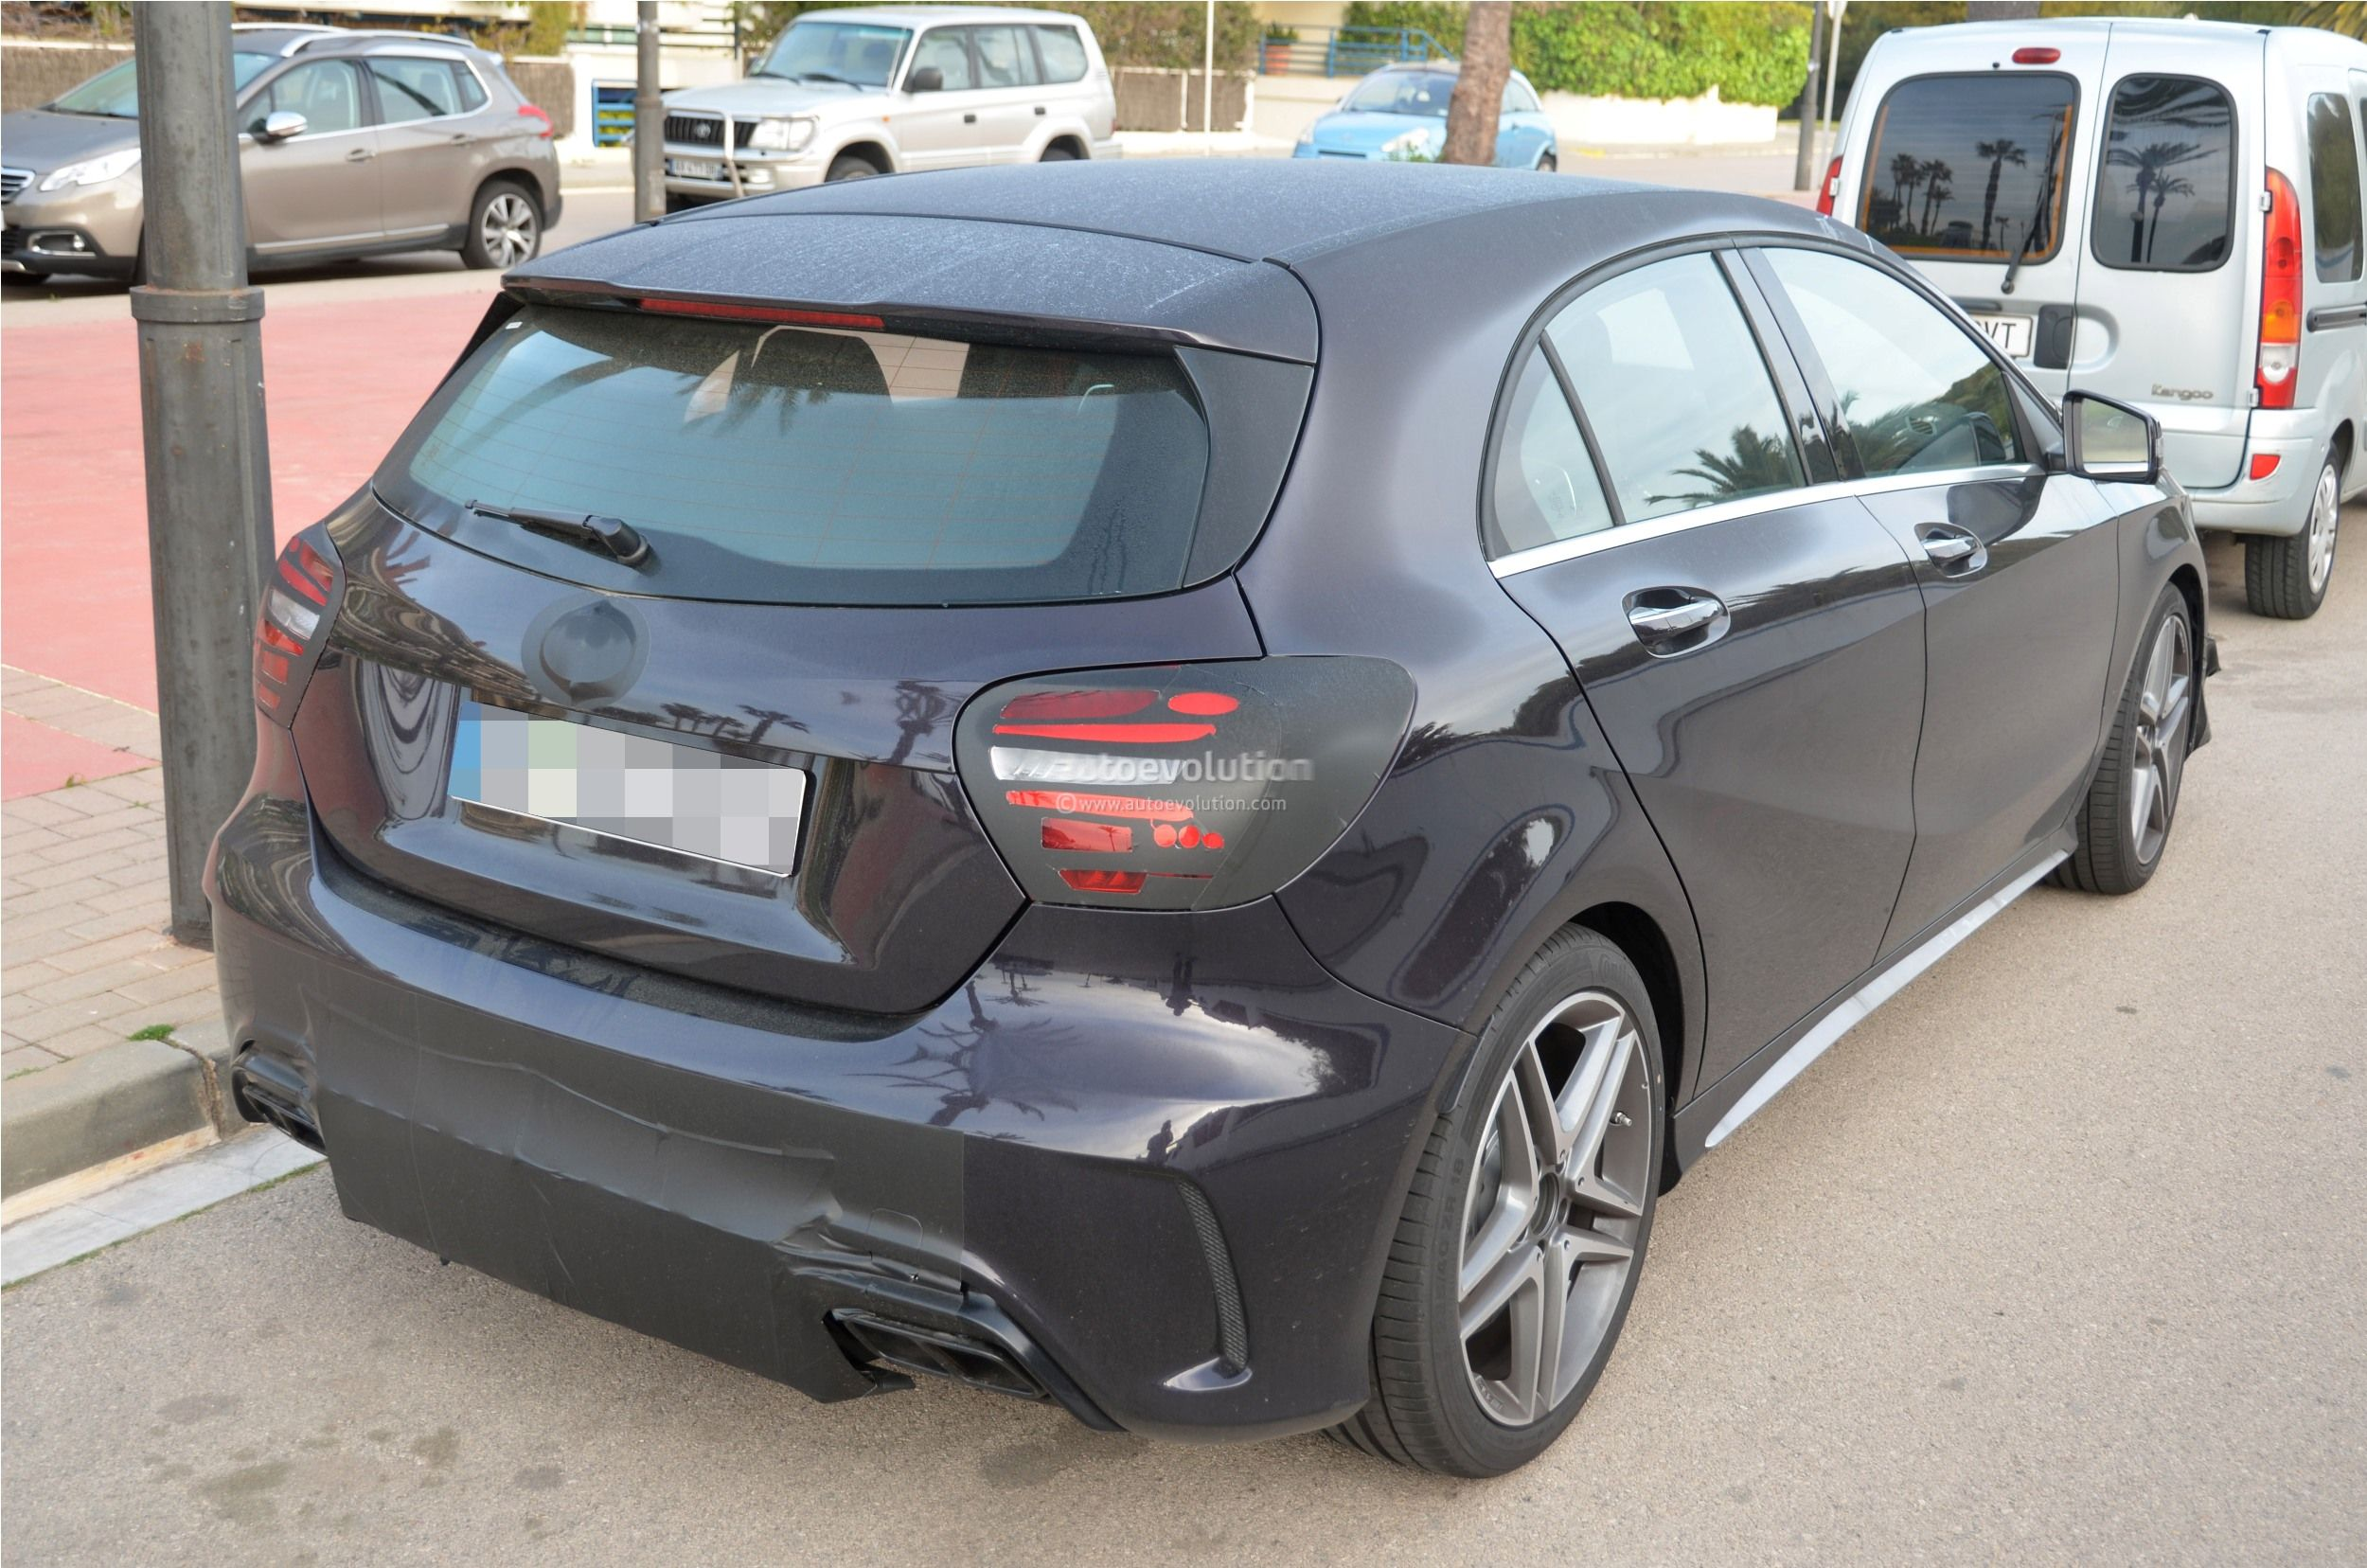 2016 - [Mercedes] Classe A restylée - Page 5 2016-mercedes-benz-a-45-amg-facelift-spied-photo-gallery_8